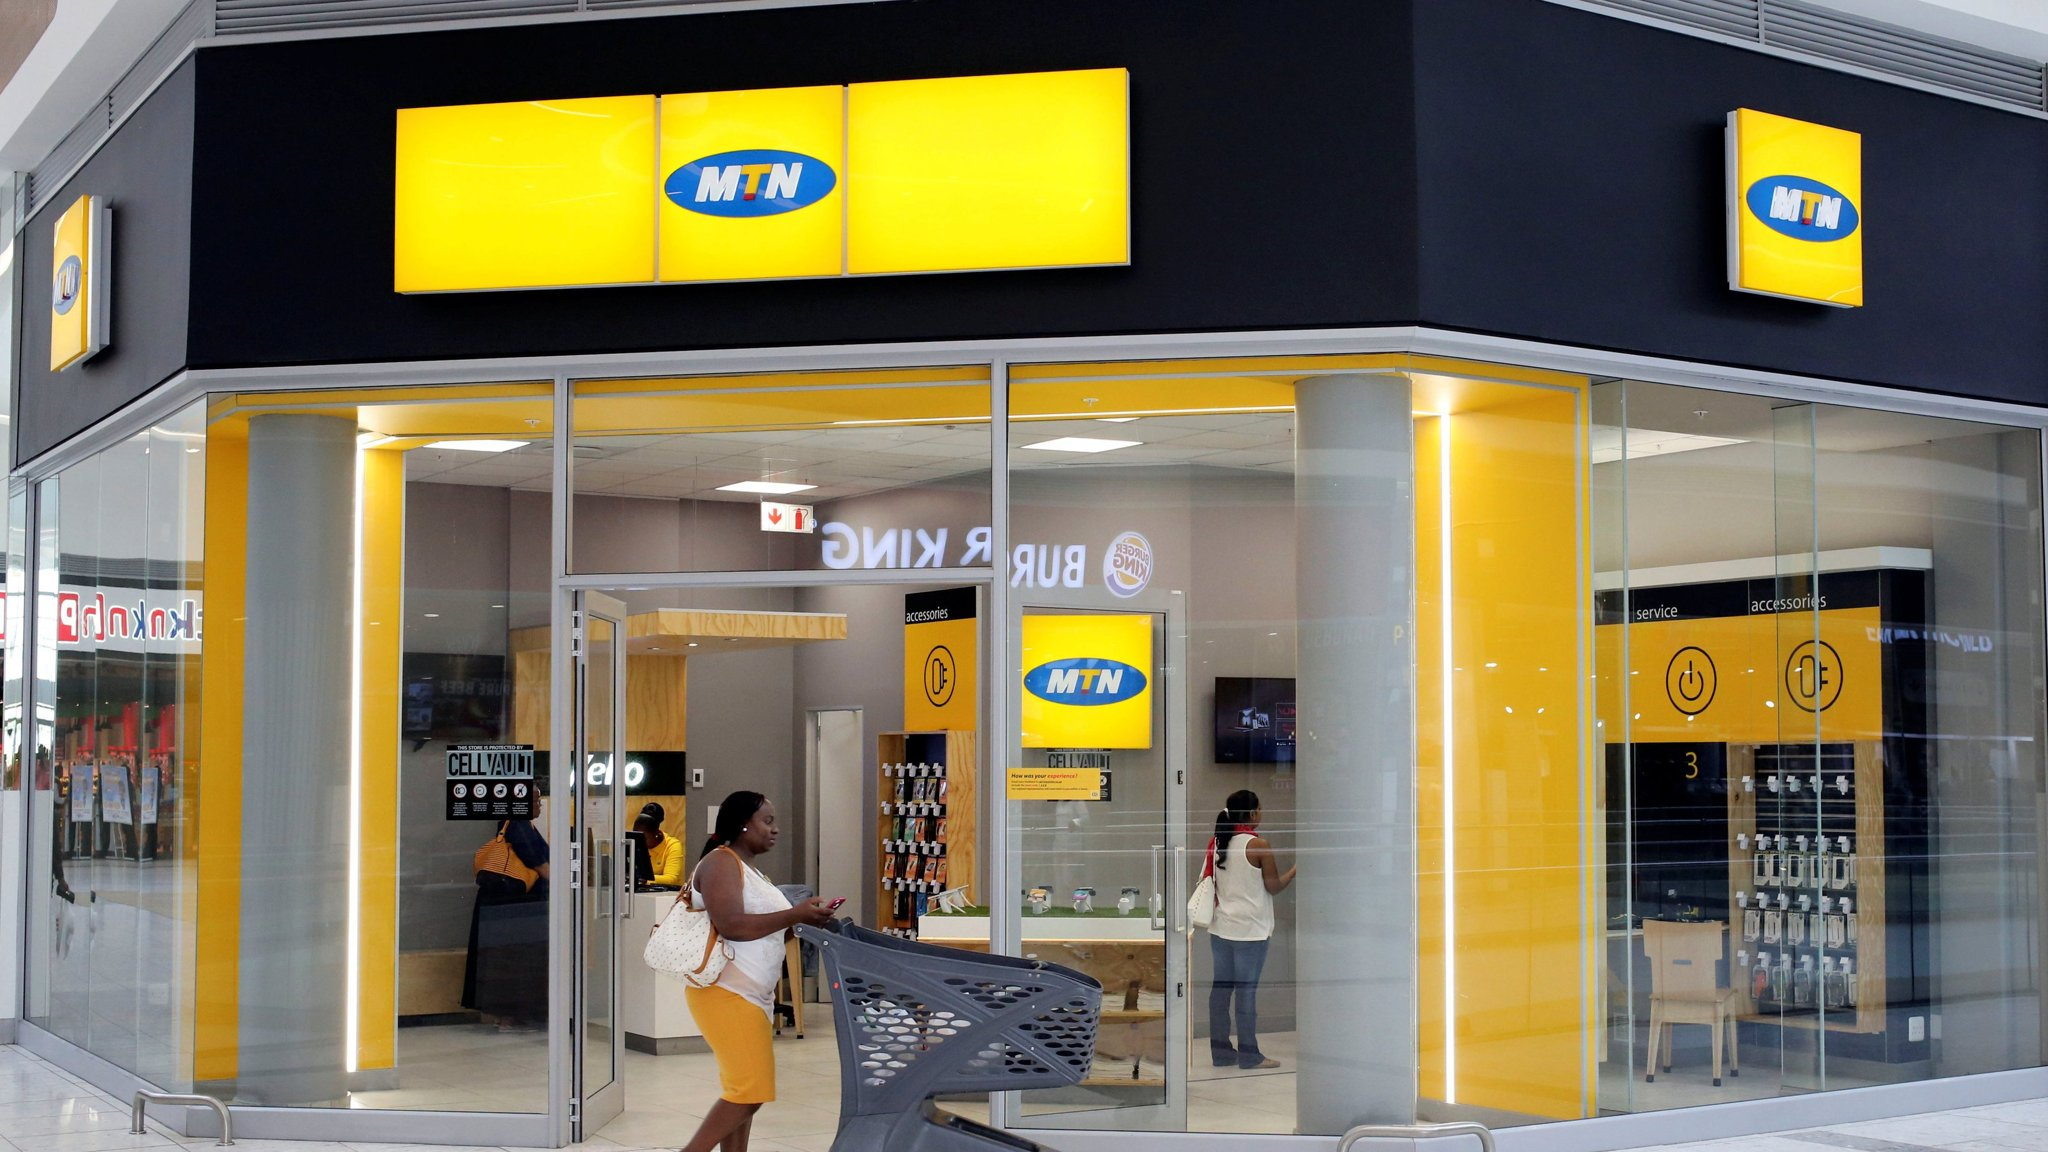 I Hate MTN! No, You Don't!